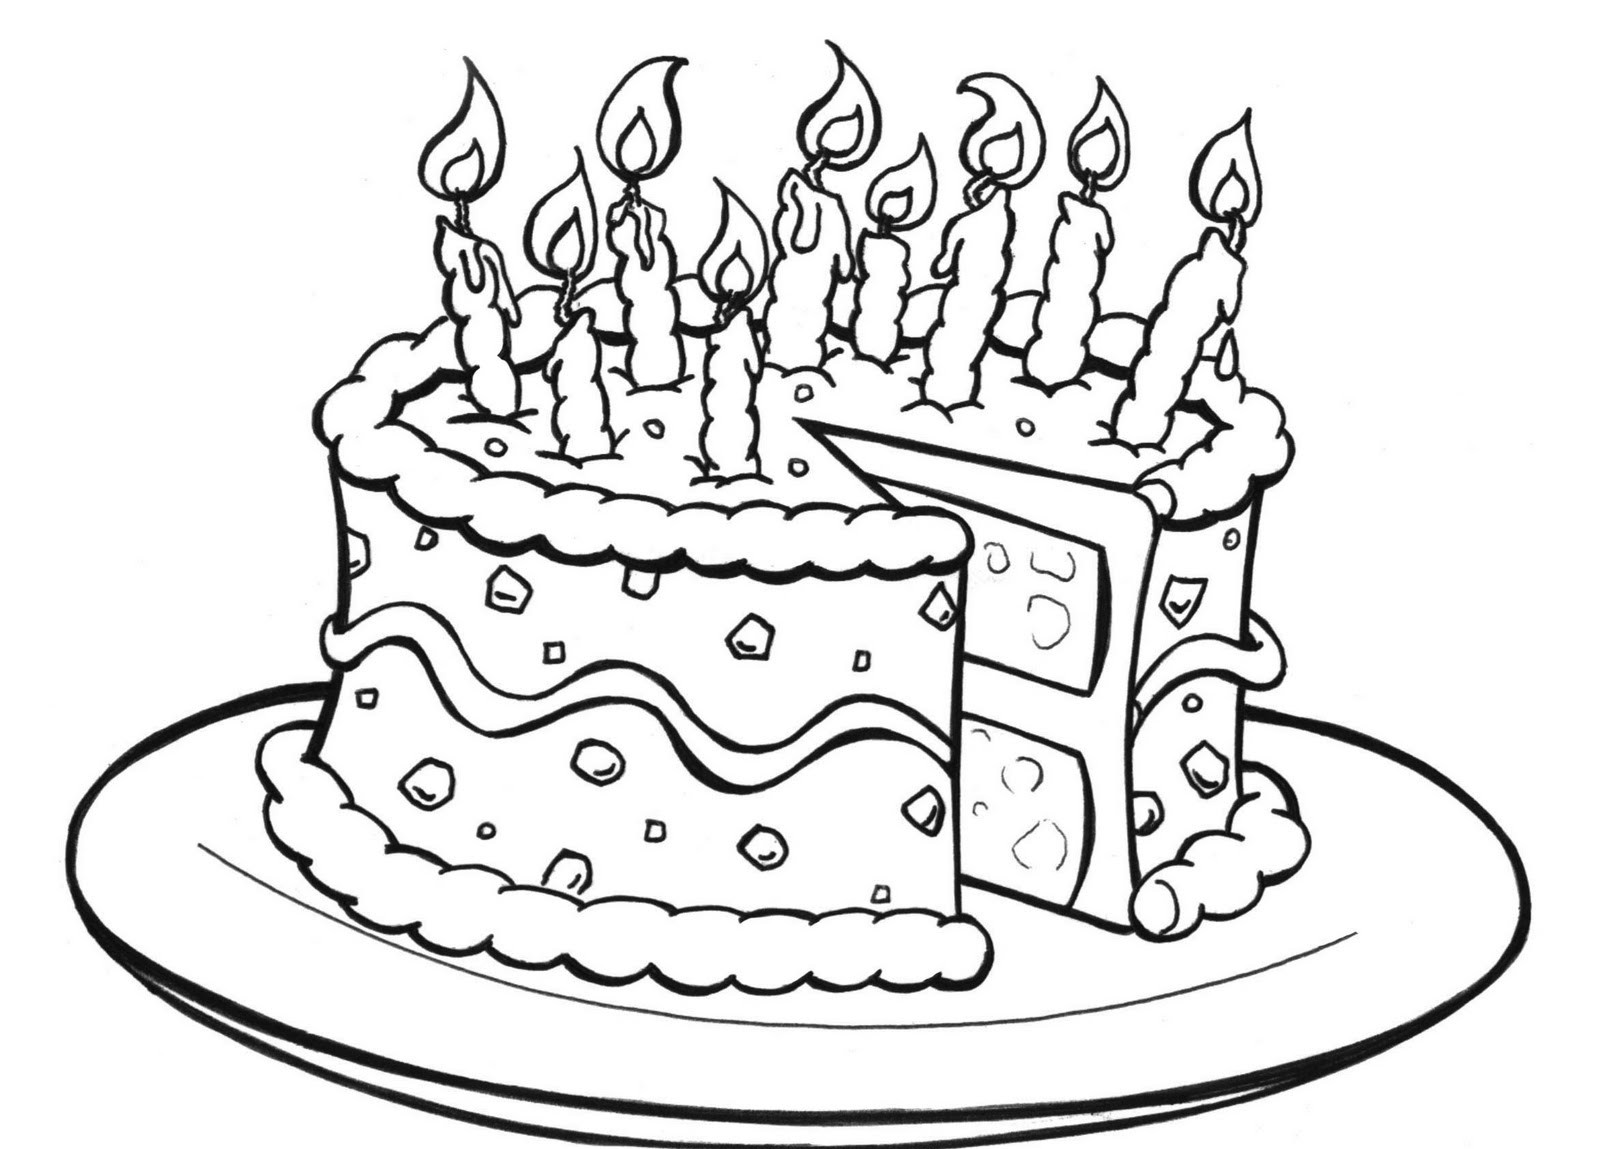 cake coloring image strawberry coloring pages best coloring pages for kids coloring cake image